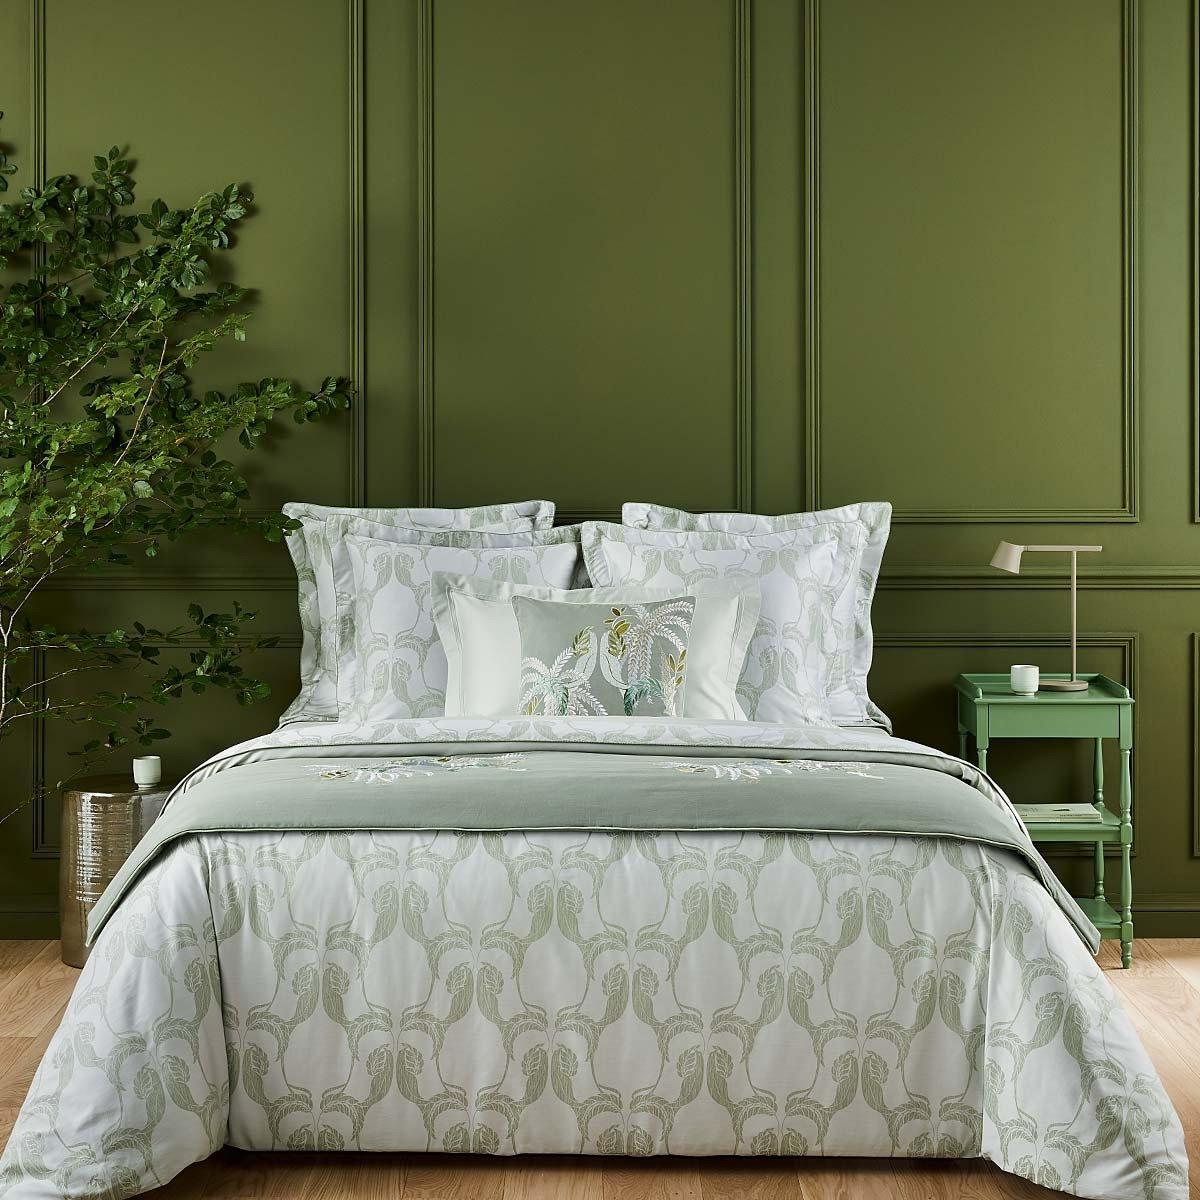 Complice Bedding by Yves Delorme